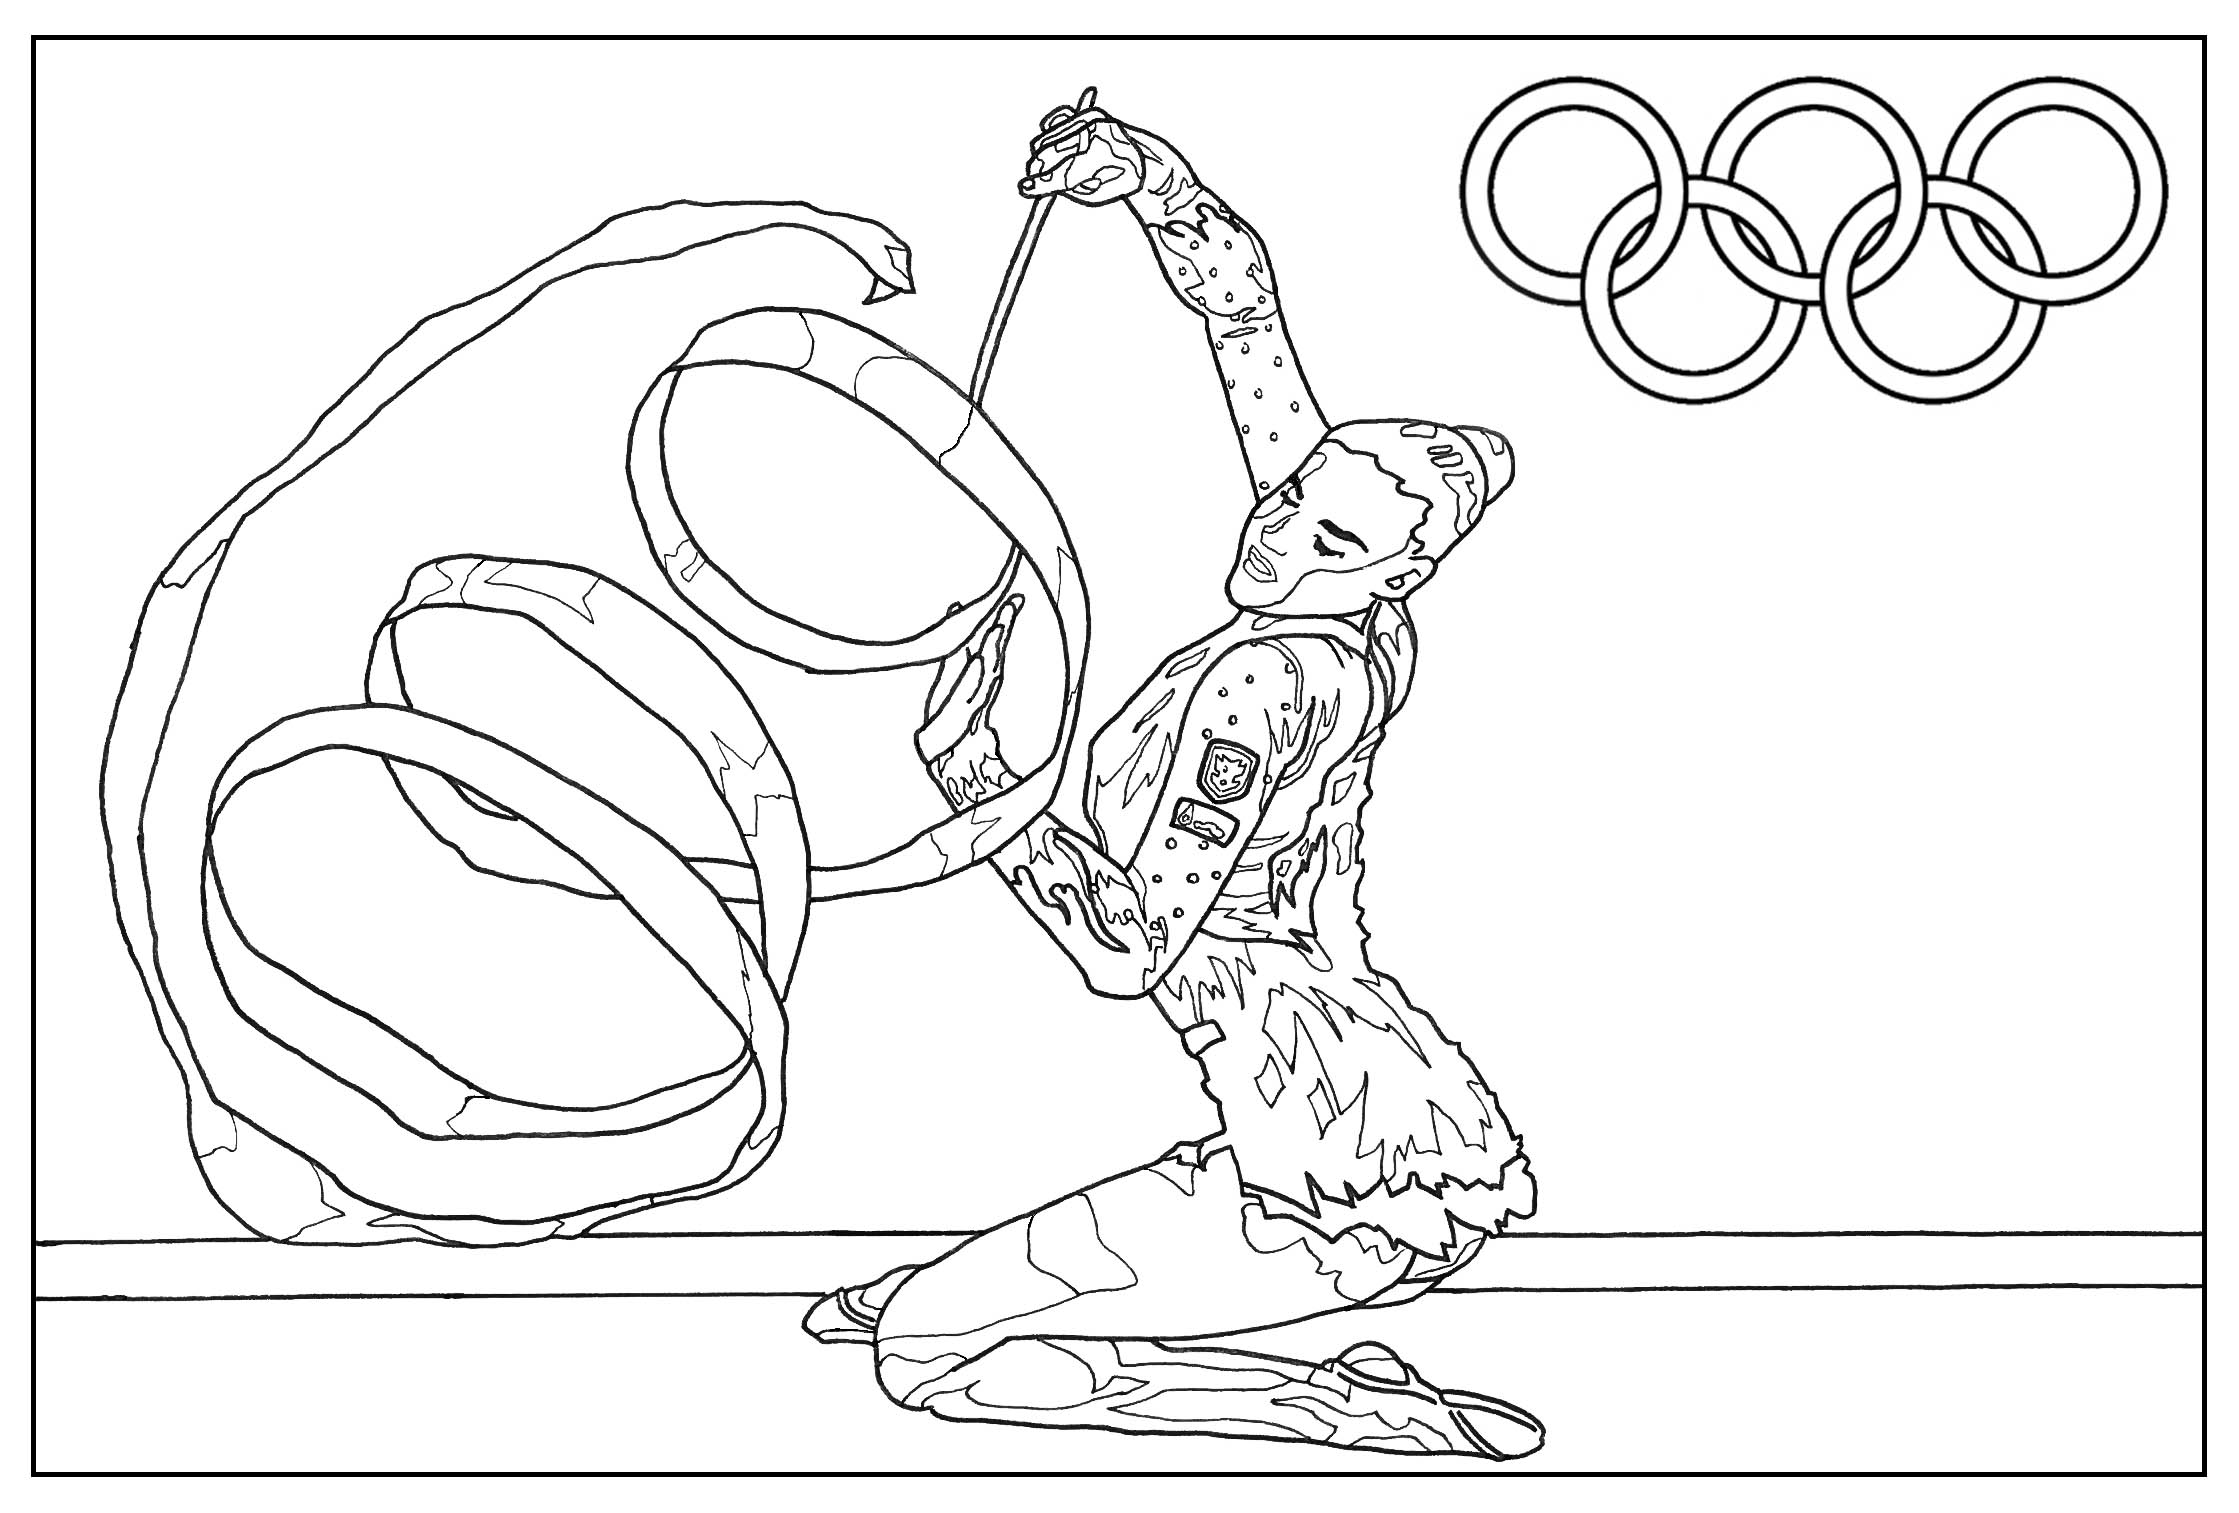 - Olympic Games To Print For Free - Olympic Games Kids Coloring Pages